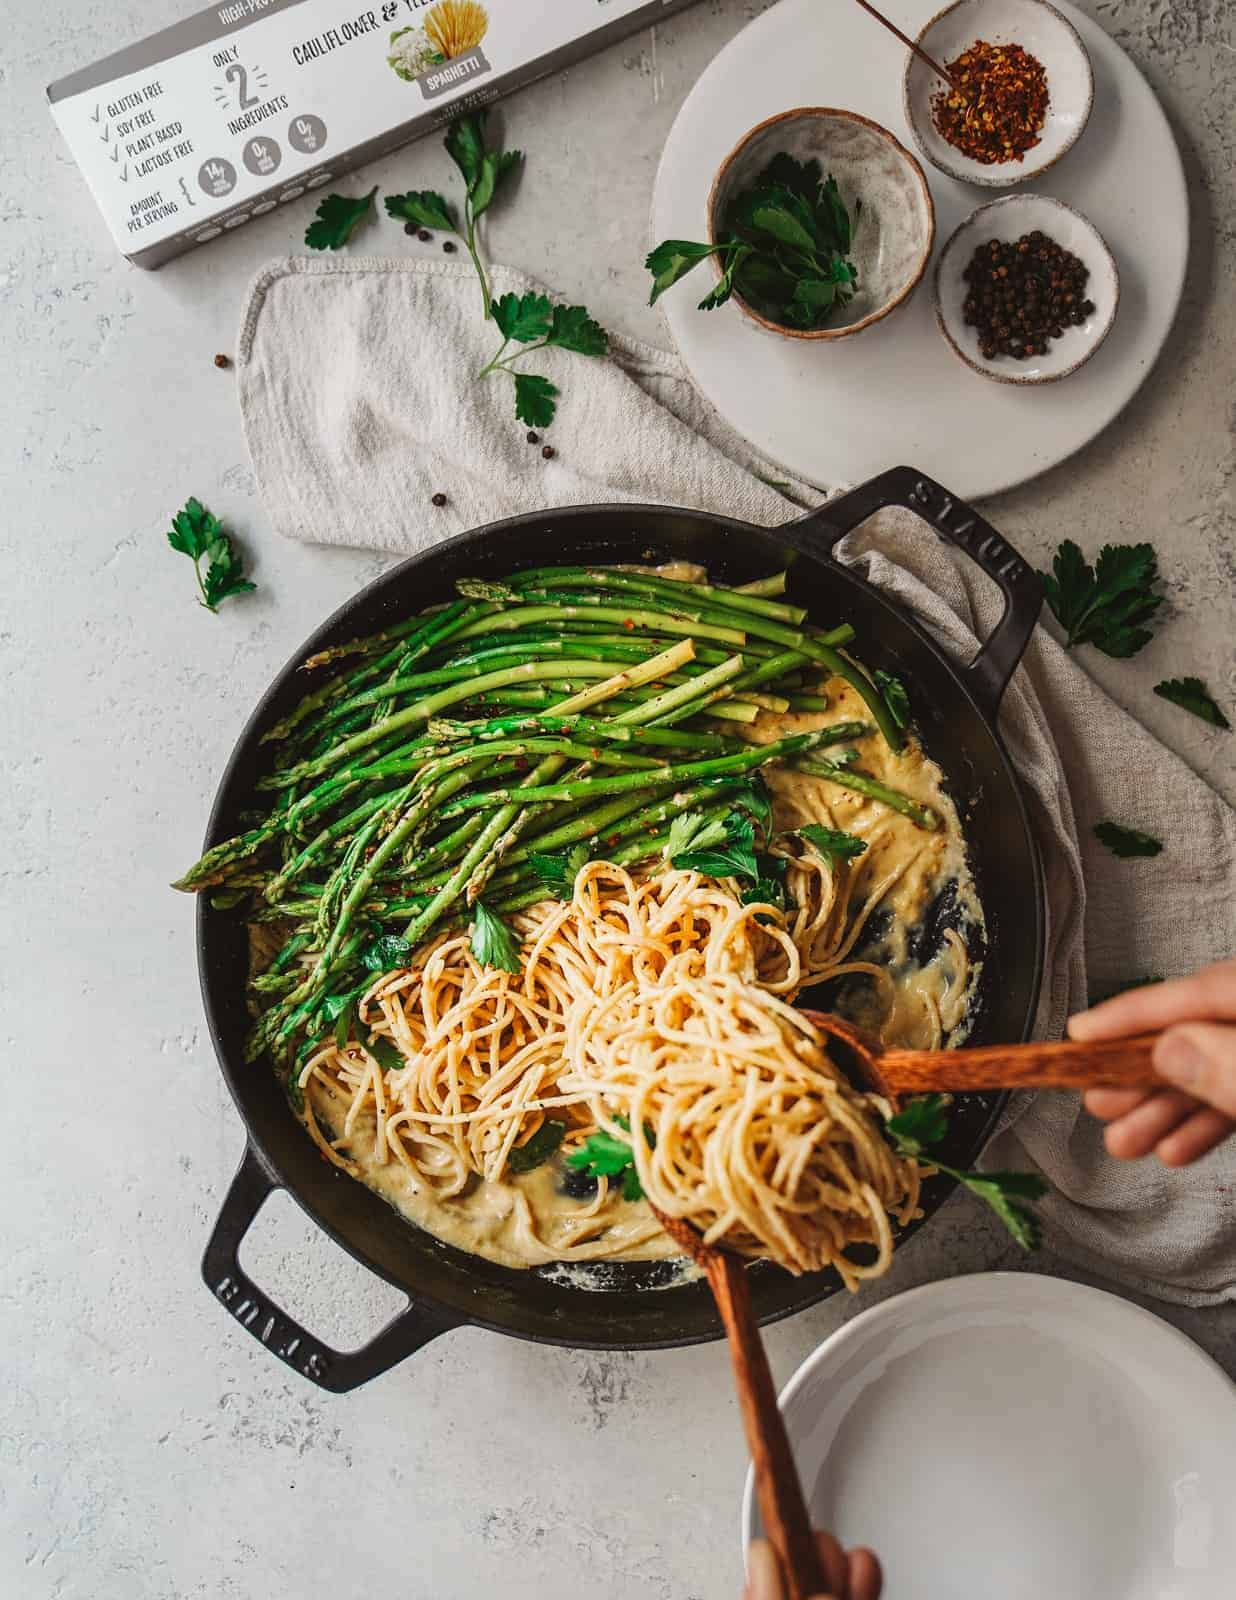 Big pan of spaghetti with asparagus and white wine spaghetti sauce sitting on table with ingredients in background.